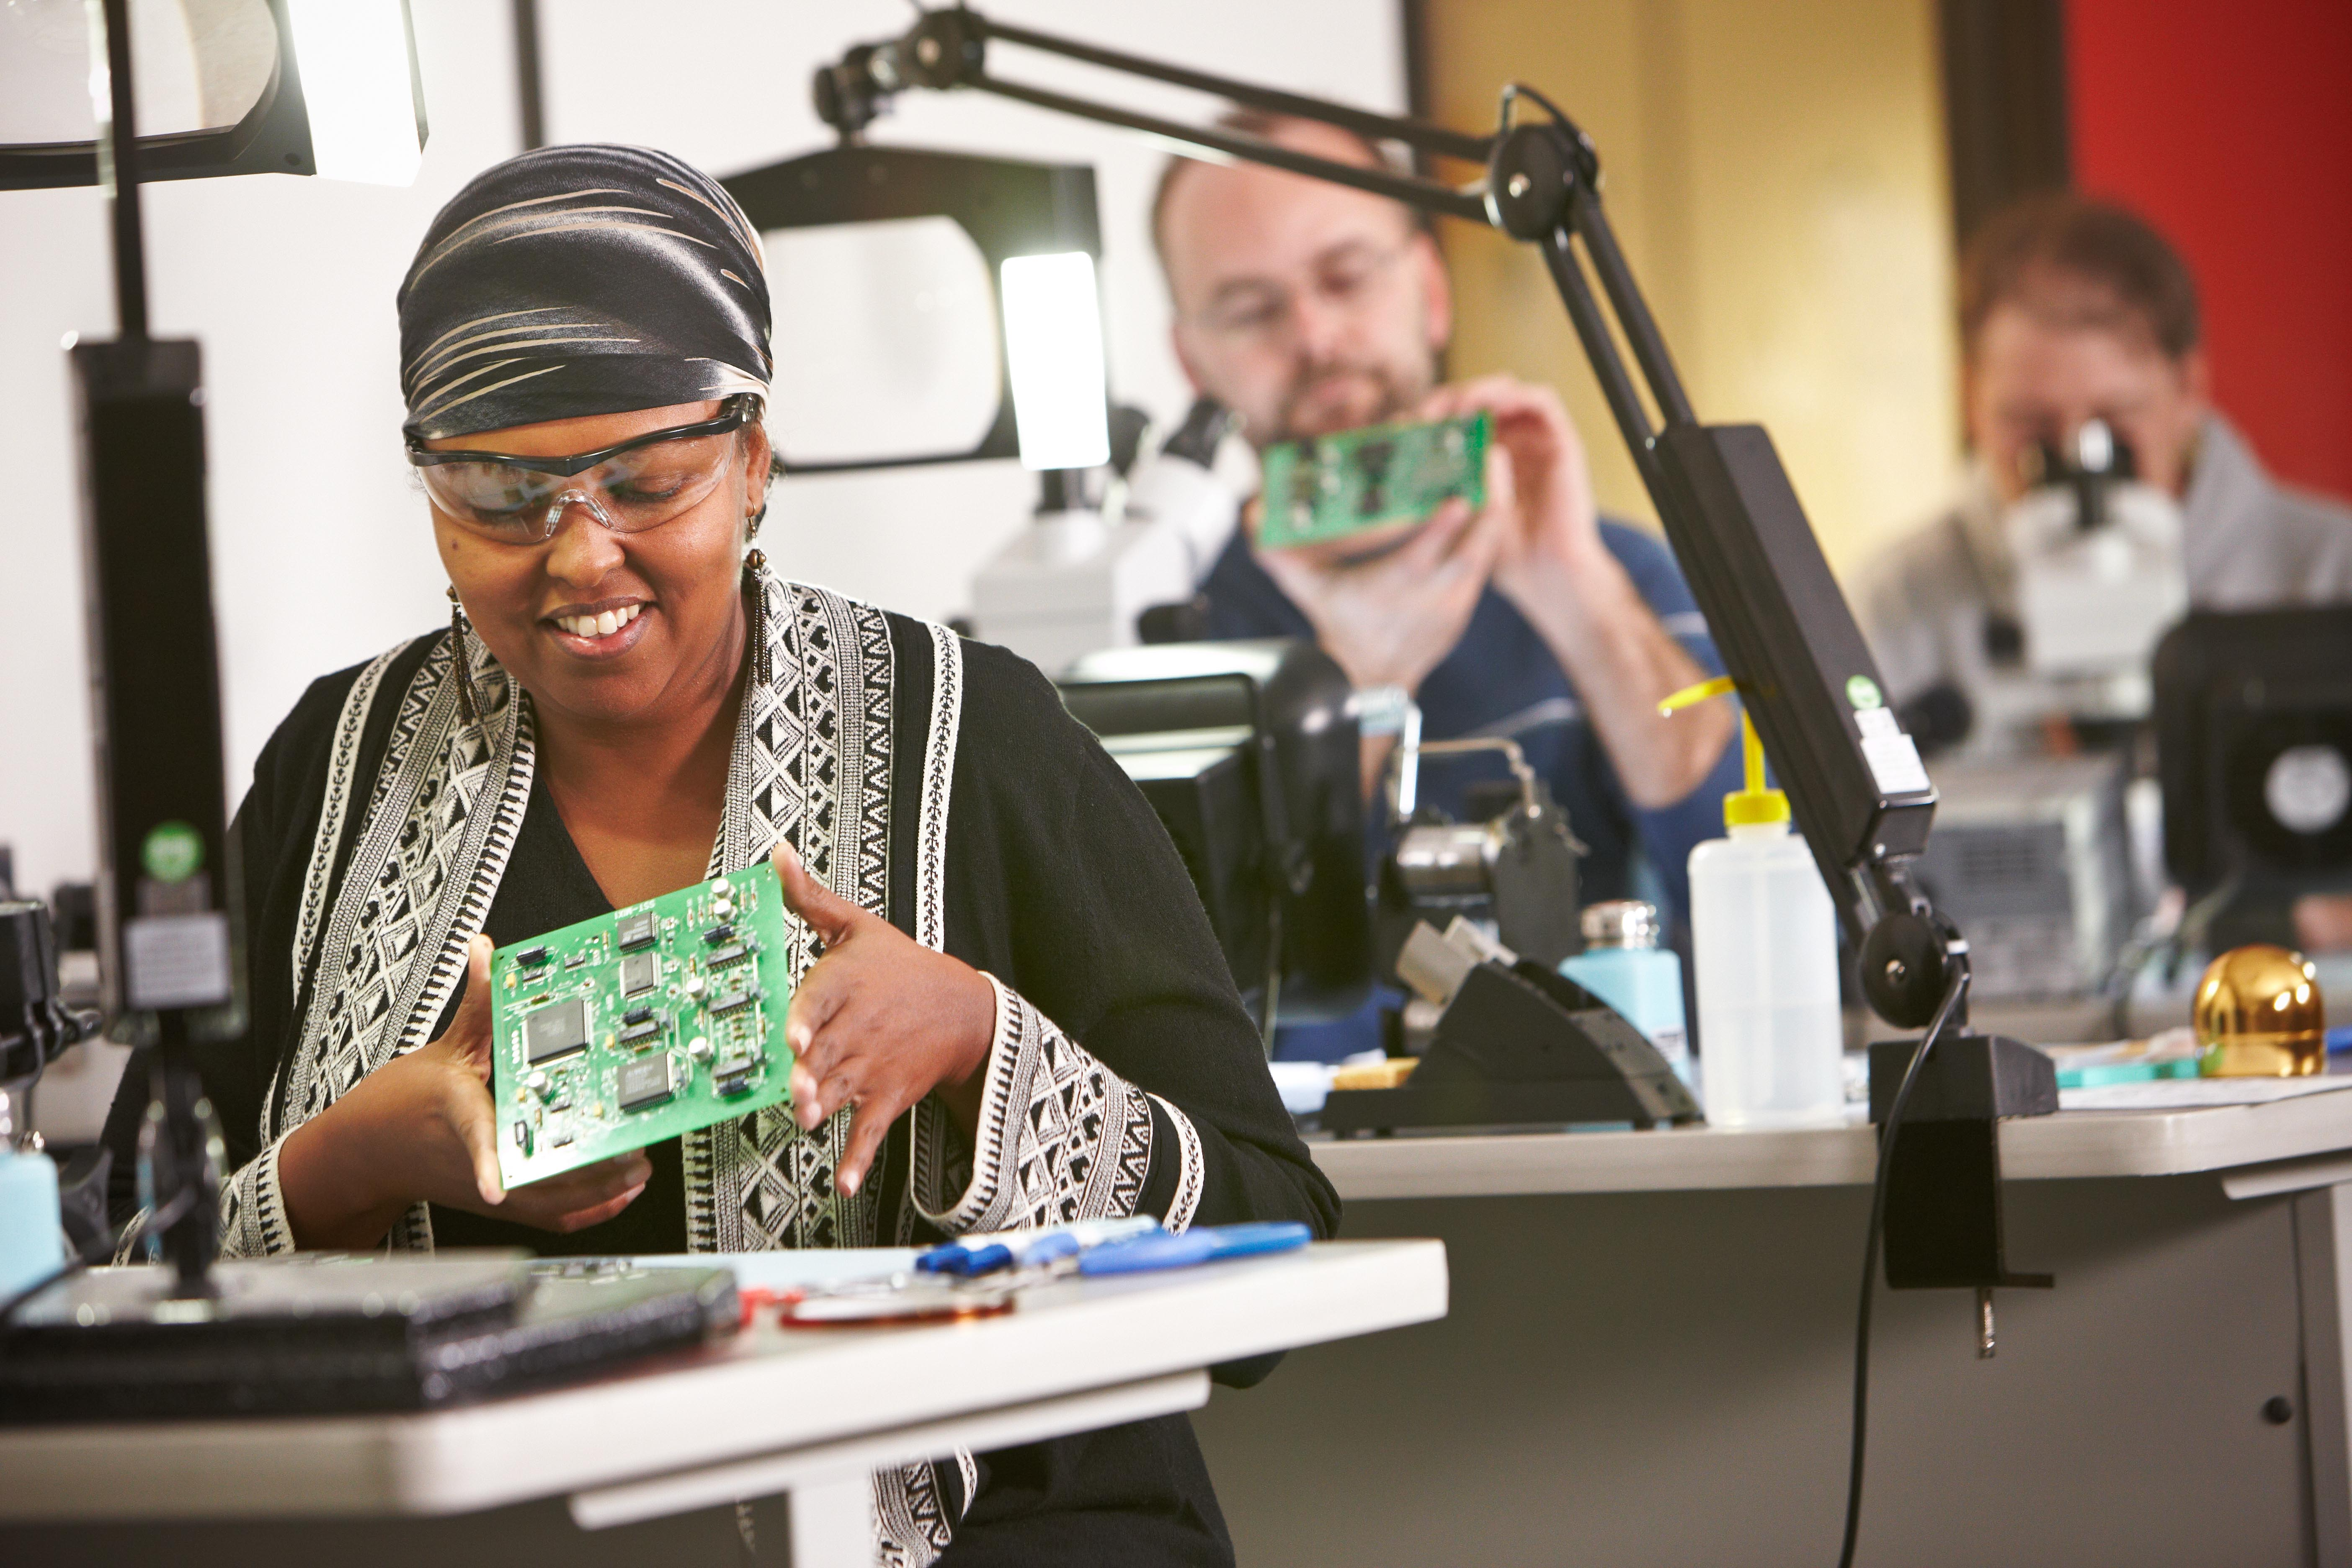 Dctc Partners With Minnesota Resource Center To Train Job Seekers